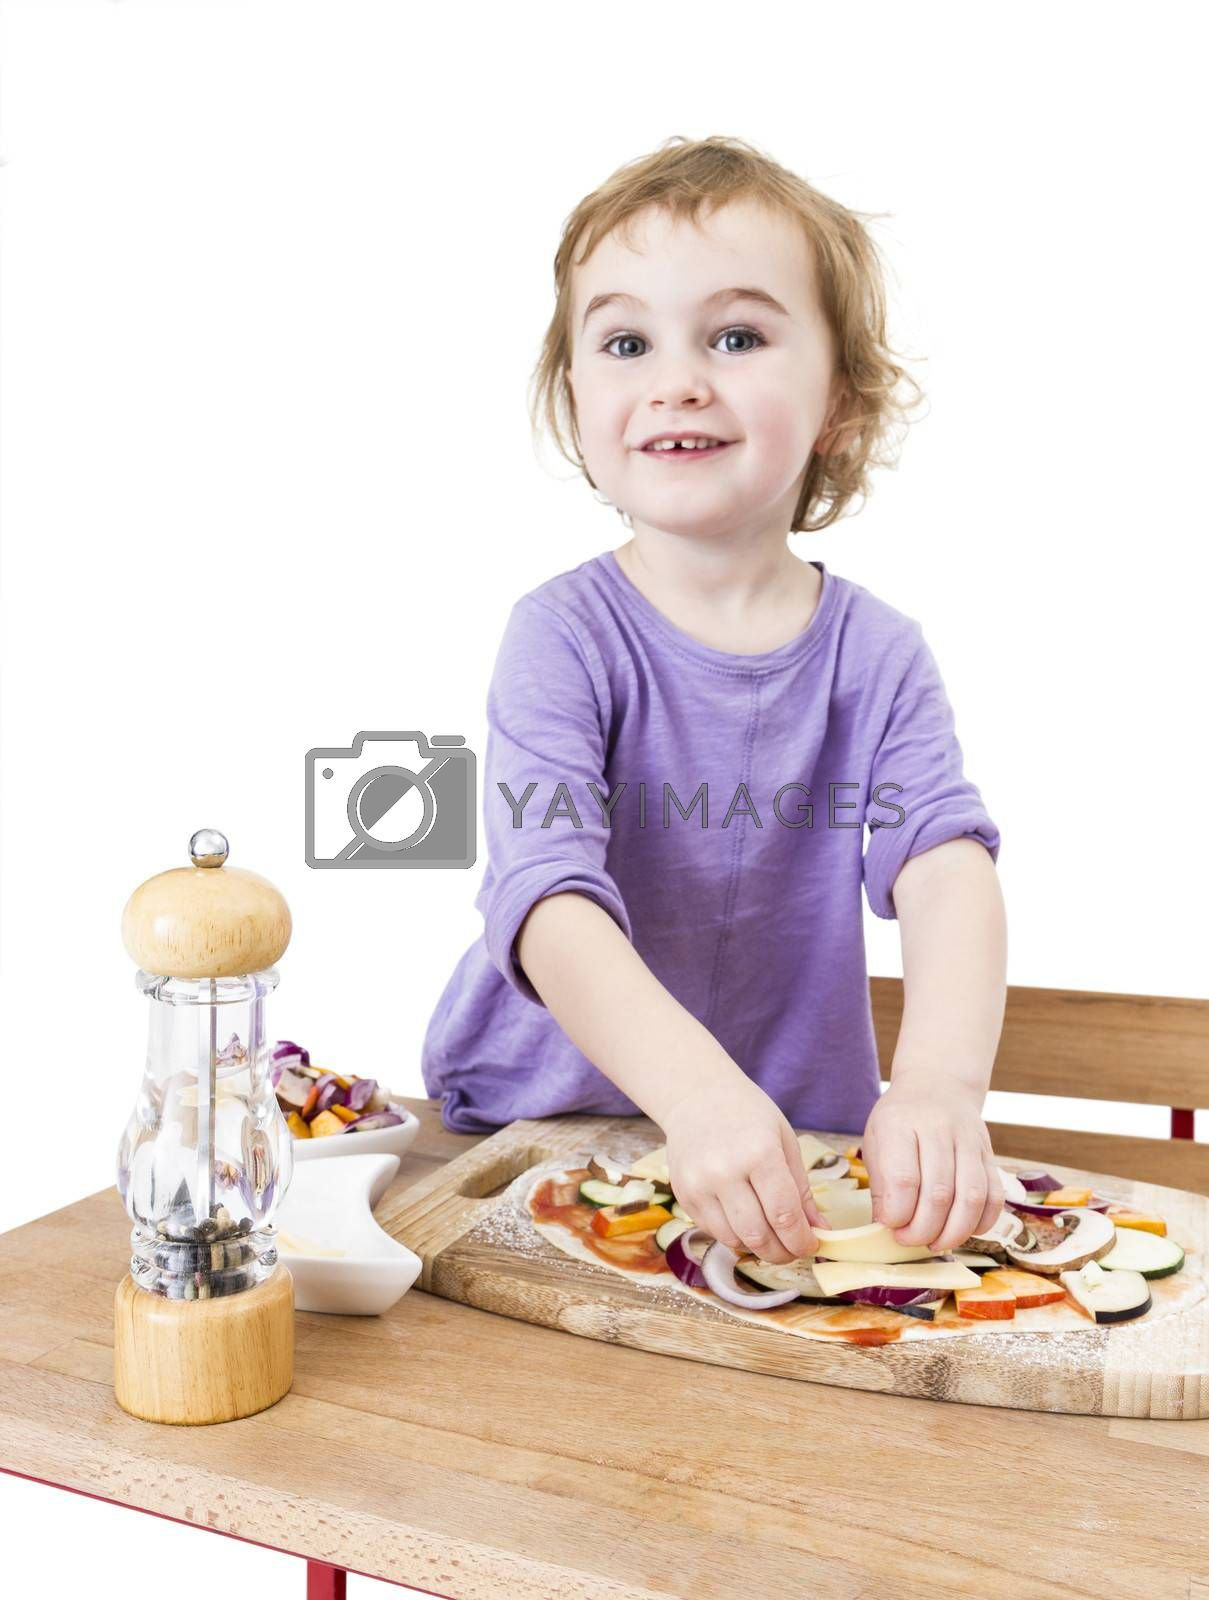 cute girl making pizza with a smile. isolated on white background